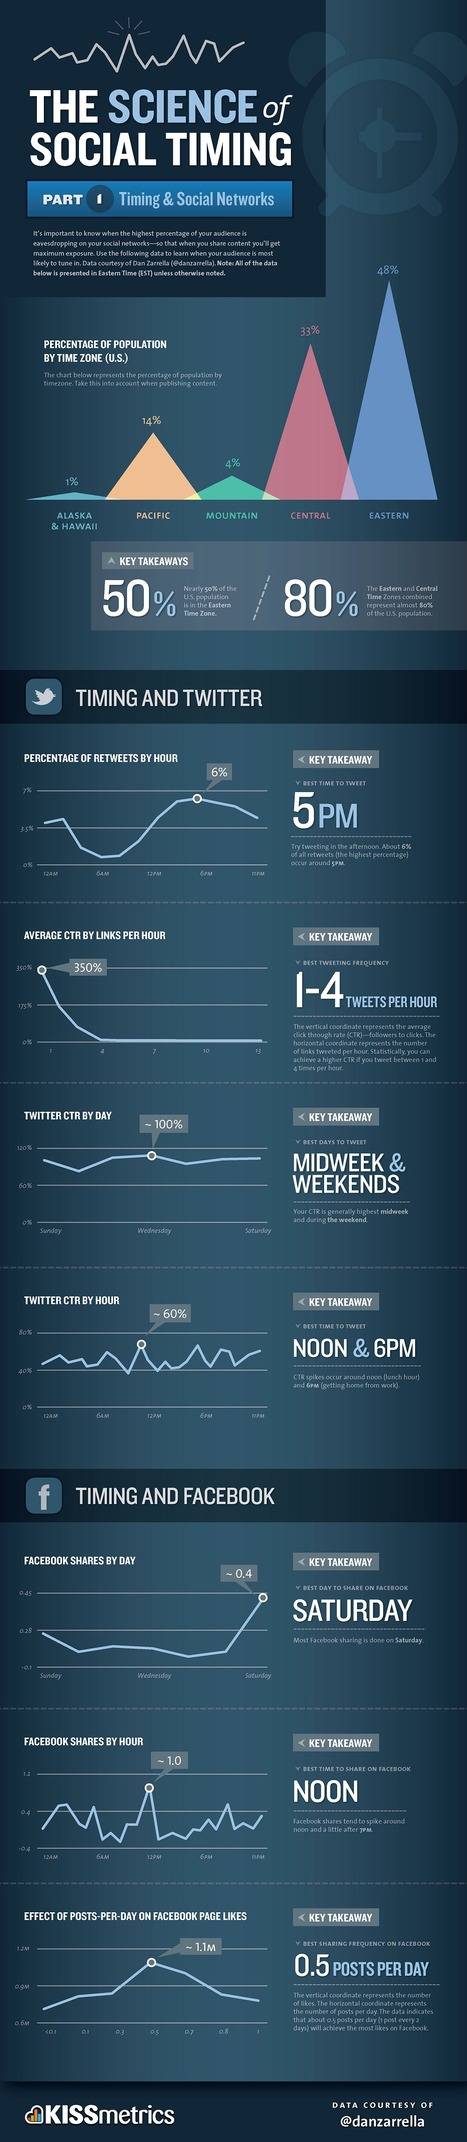 Infographic: The Science of Social Timing | WEBOLUTION! | Scoop.it